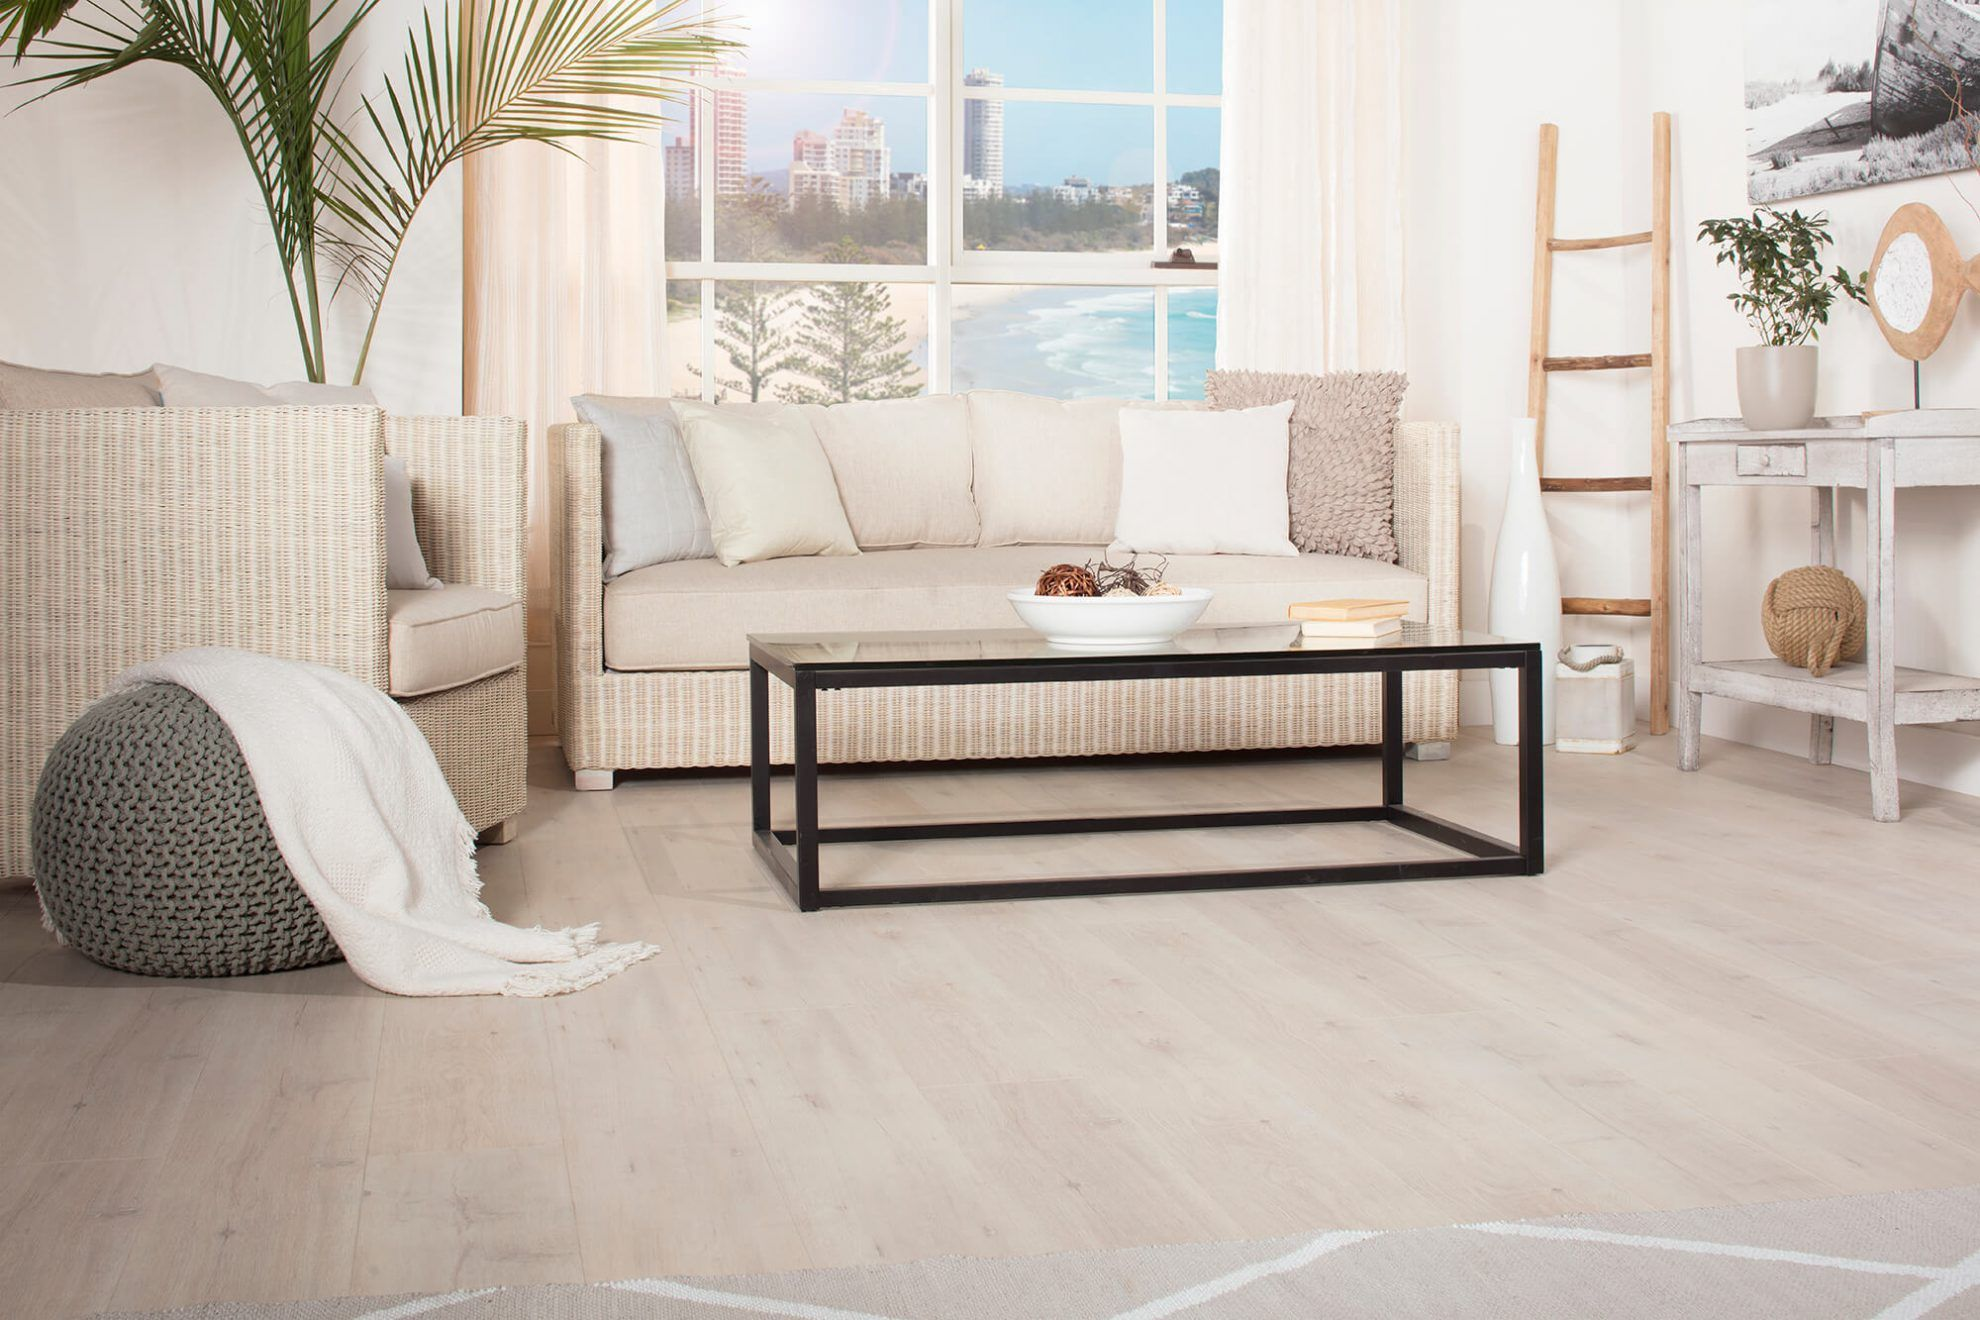 Mr Floor Melbourne Is One Of The Cheapest Laminate Flooring